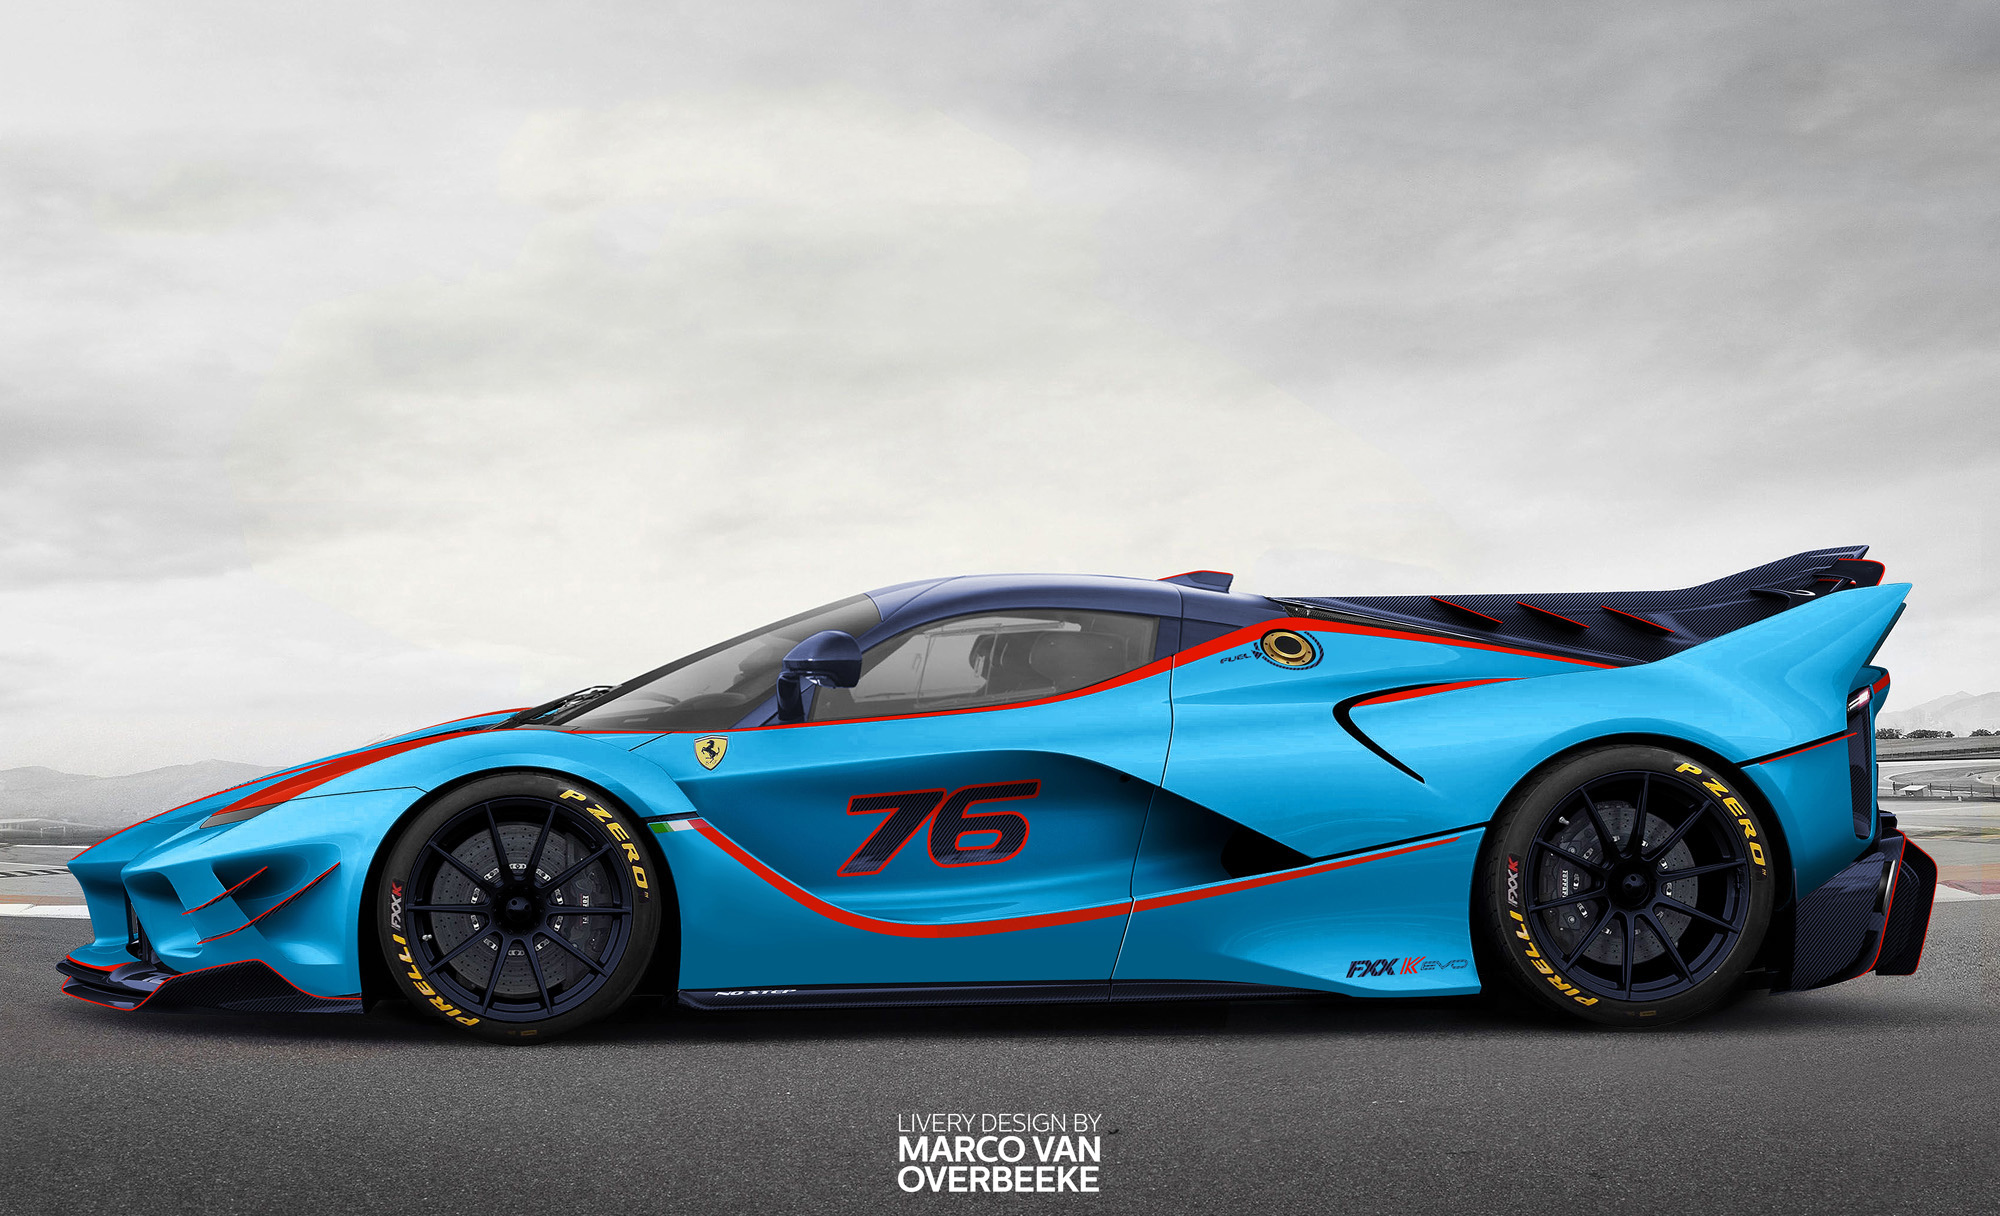 Ferrari Laferrari Fxx K Evo Side View Hd Cars 4k Wallpapers Images Backgrounds Photos And Pictures